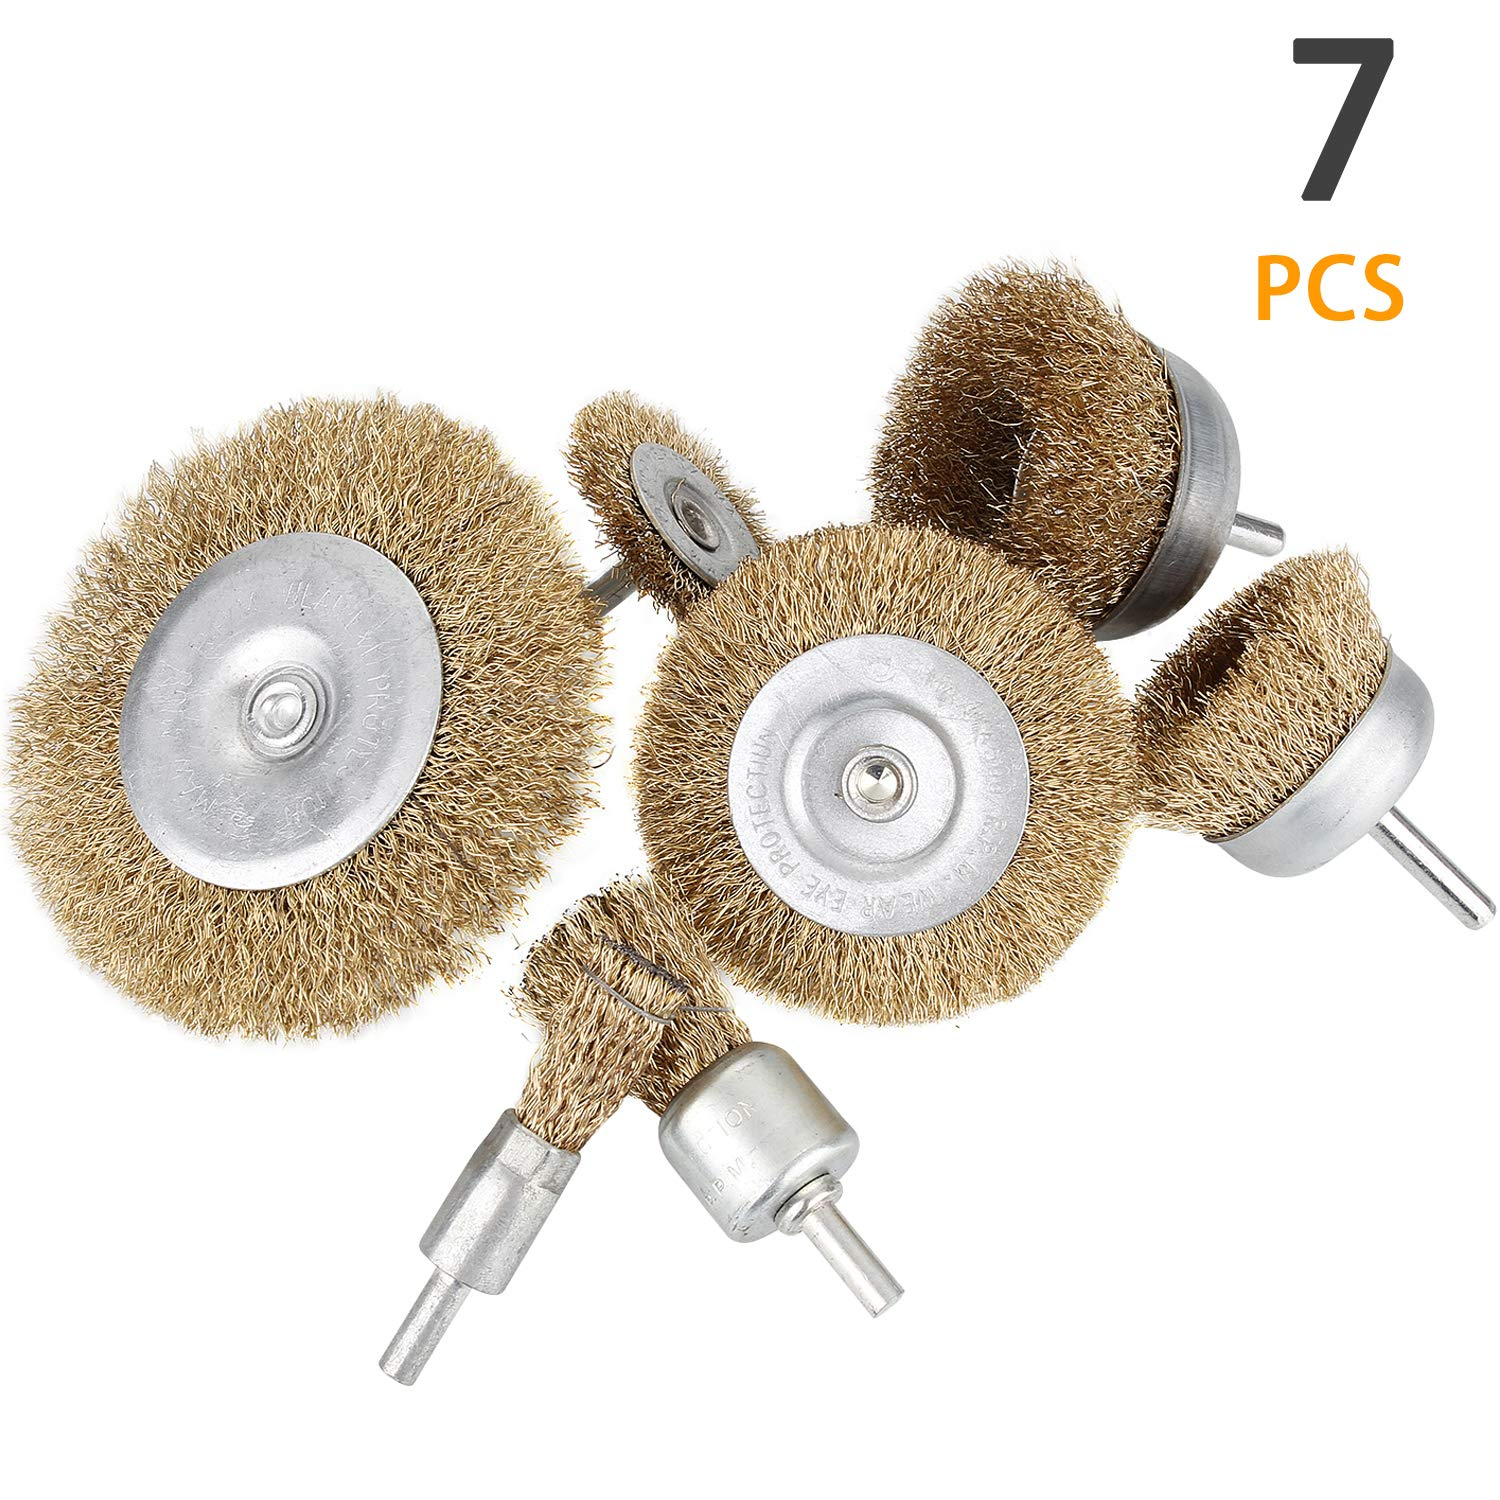 Reduced Wire Breakage and Longer Life 7 Sizes Coated Wire Drill Brush Set Perfect For Removal of Rust//Corrosion//Paint Swpeet 7Pcs Brass Coated Wire Brush Wheel /& Cup Brush Set with 1//4-Inch Shank